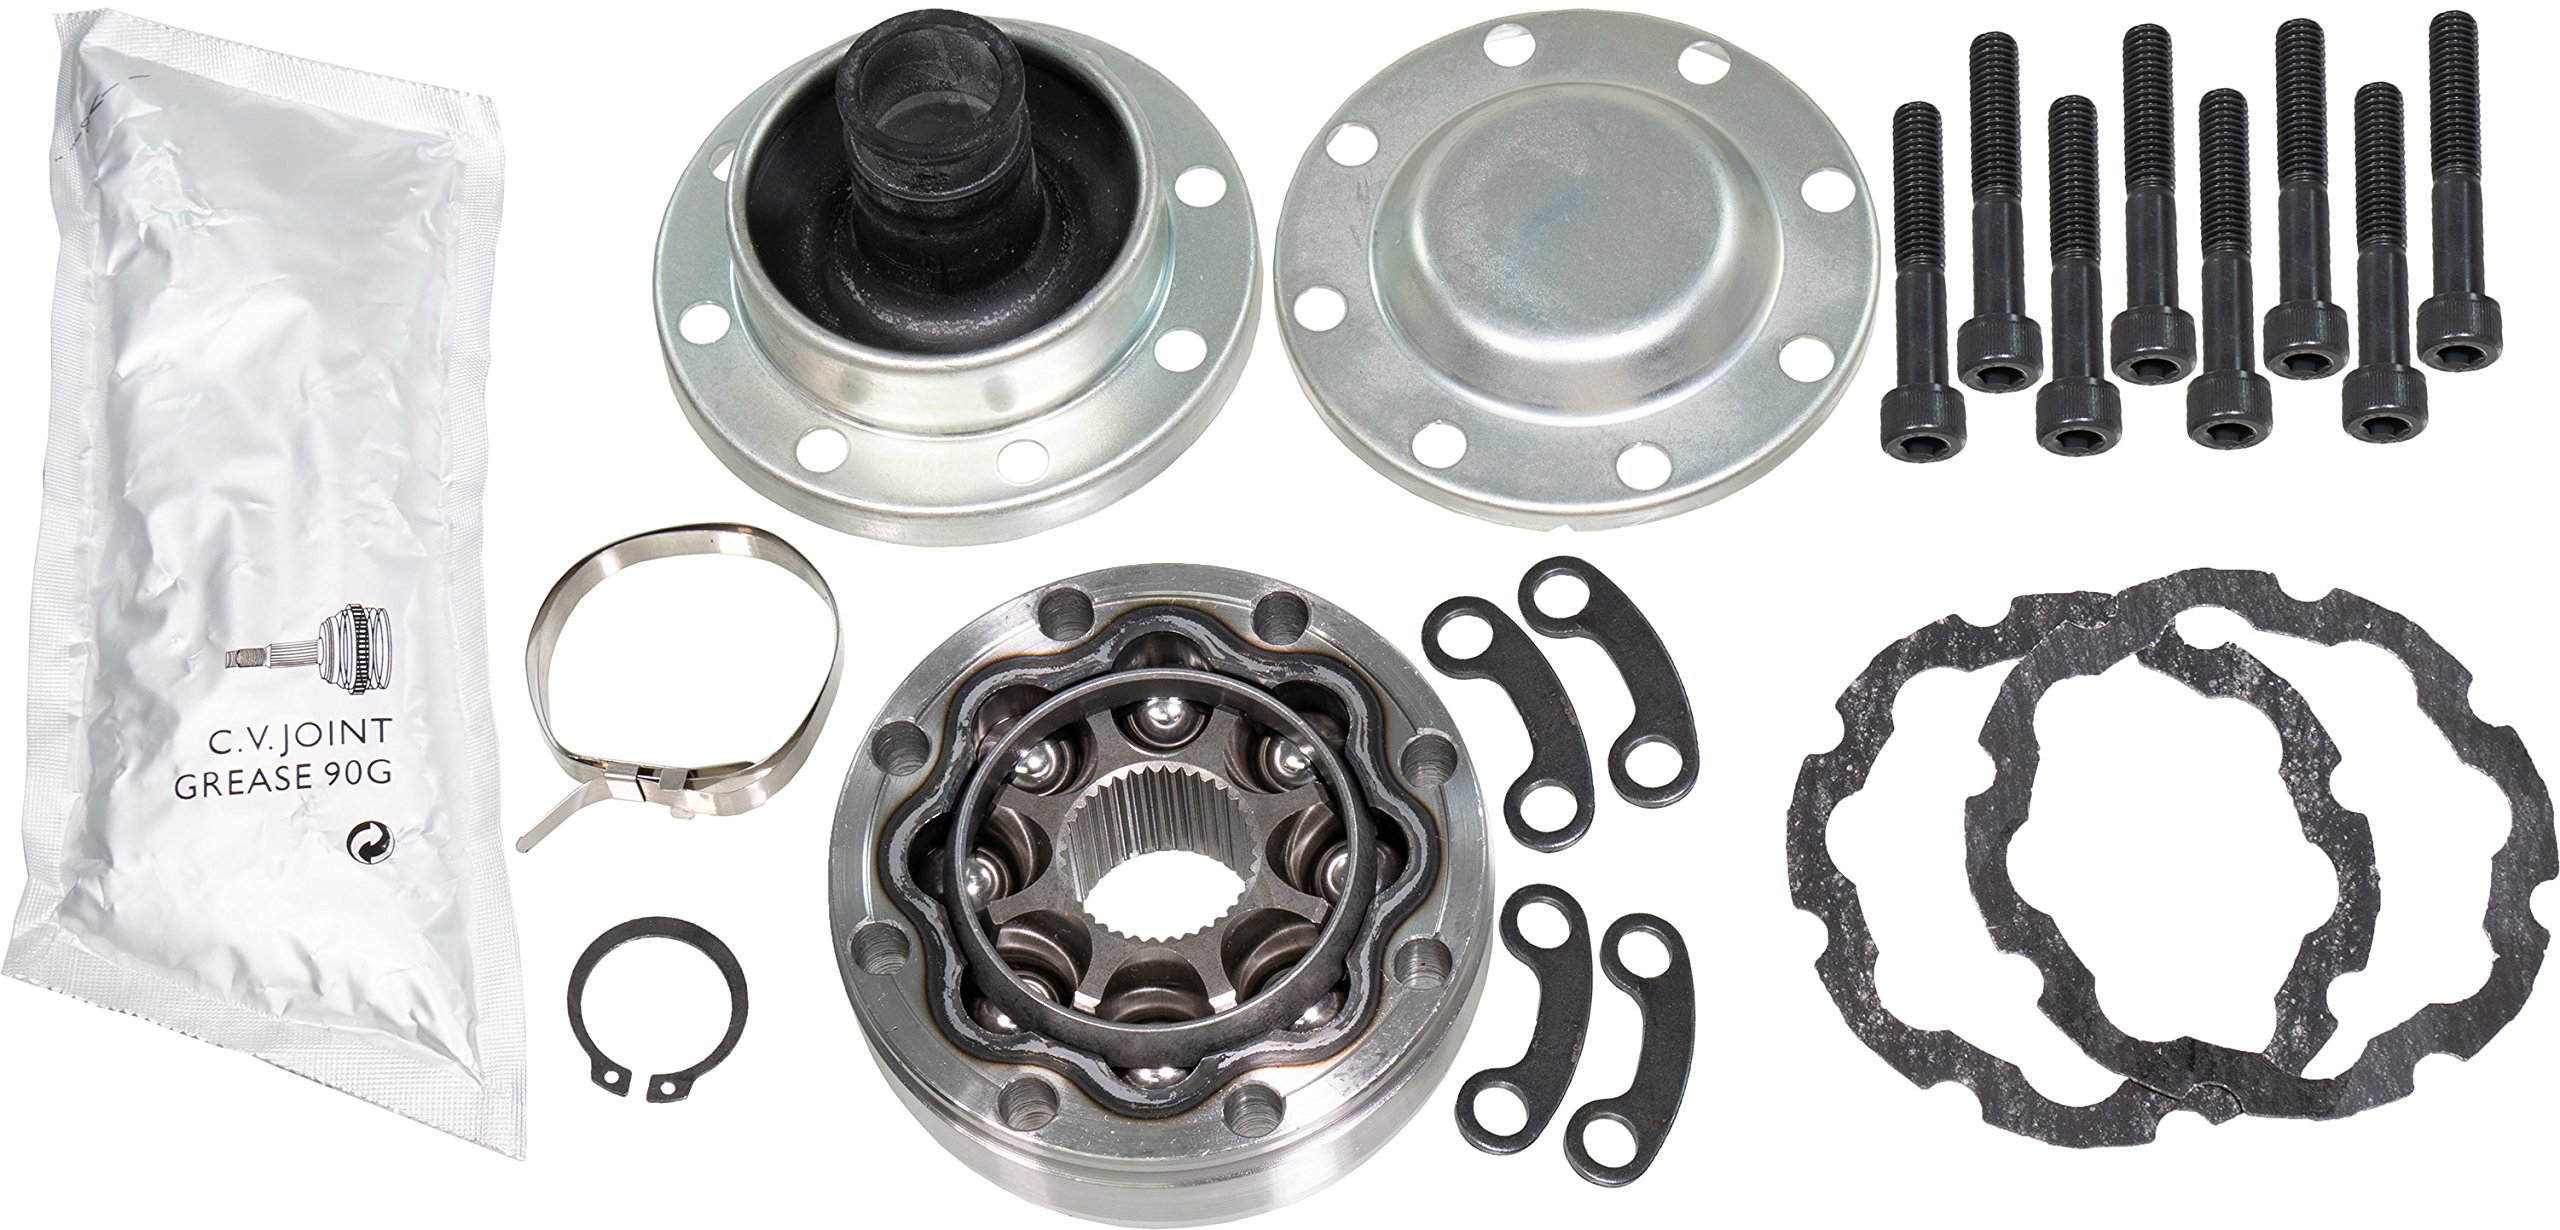 APDTY 043417 Driveshaft Propeller Shaft CV Joint Kit Fits 2007-2016 Jeep Wrangler Front or Rear With 8-Bolt Flange (Allows Repair Of The 8-Bolt Driveshaft Instead Of Total Replacement)